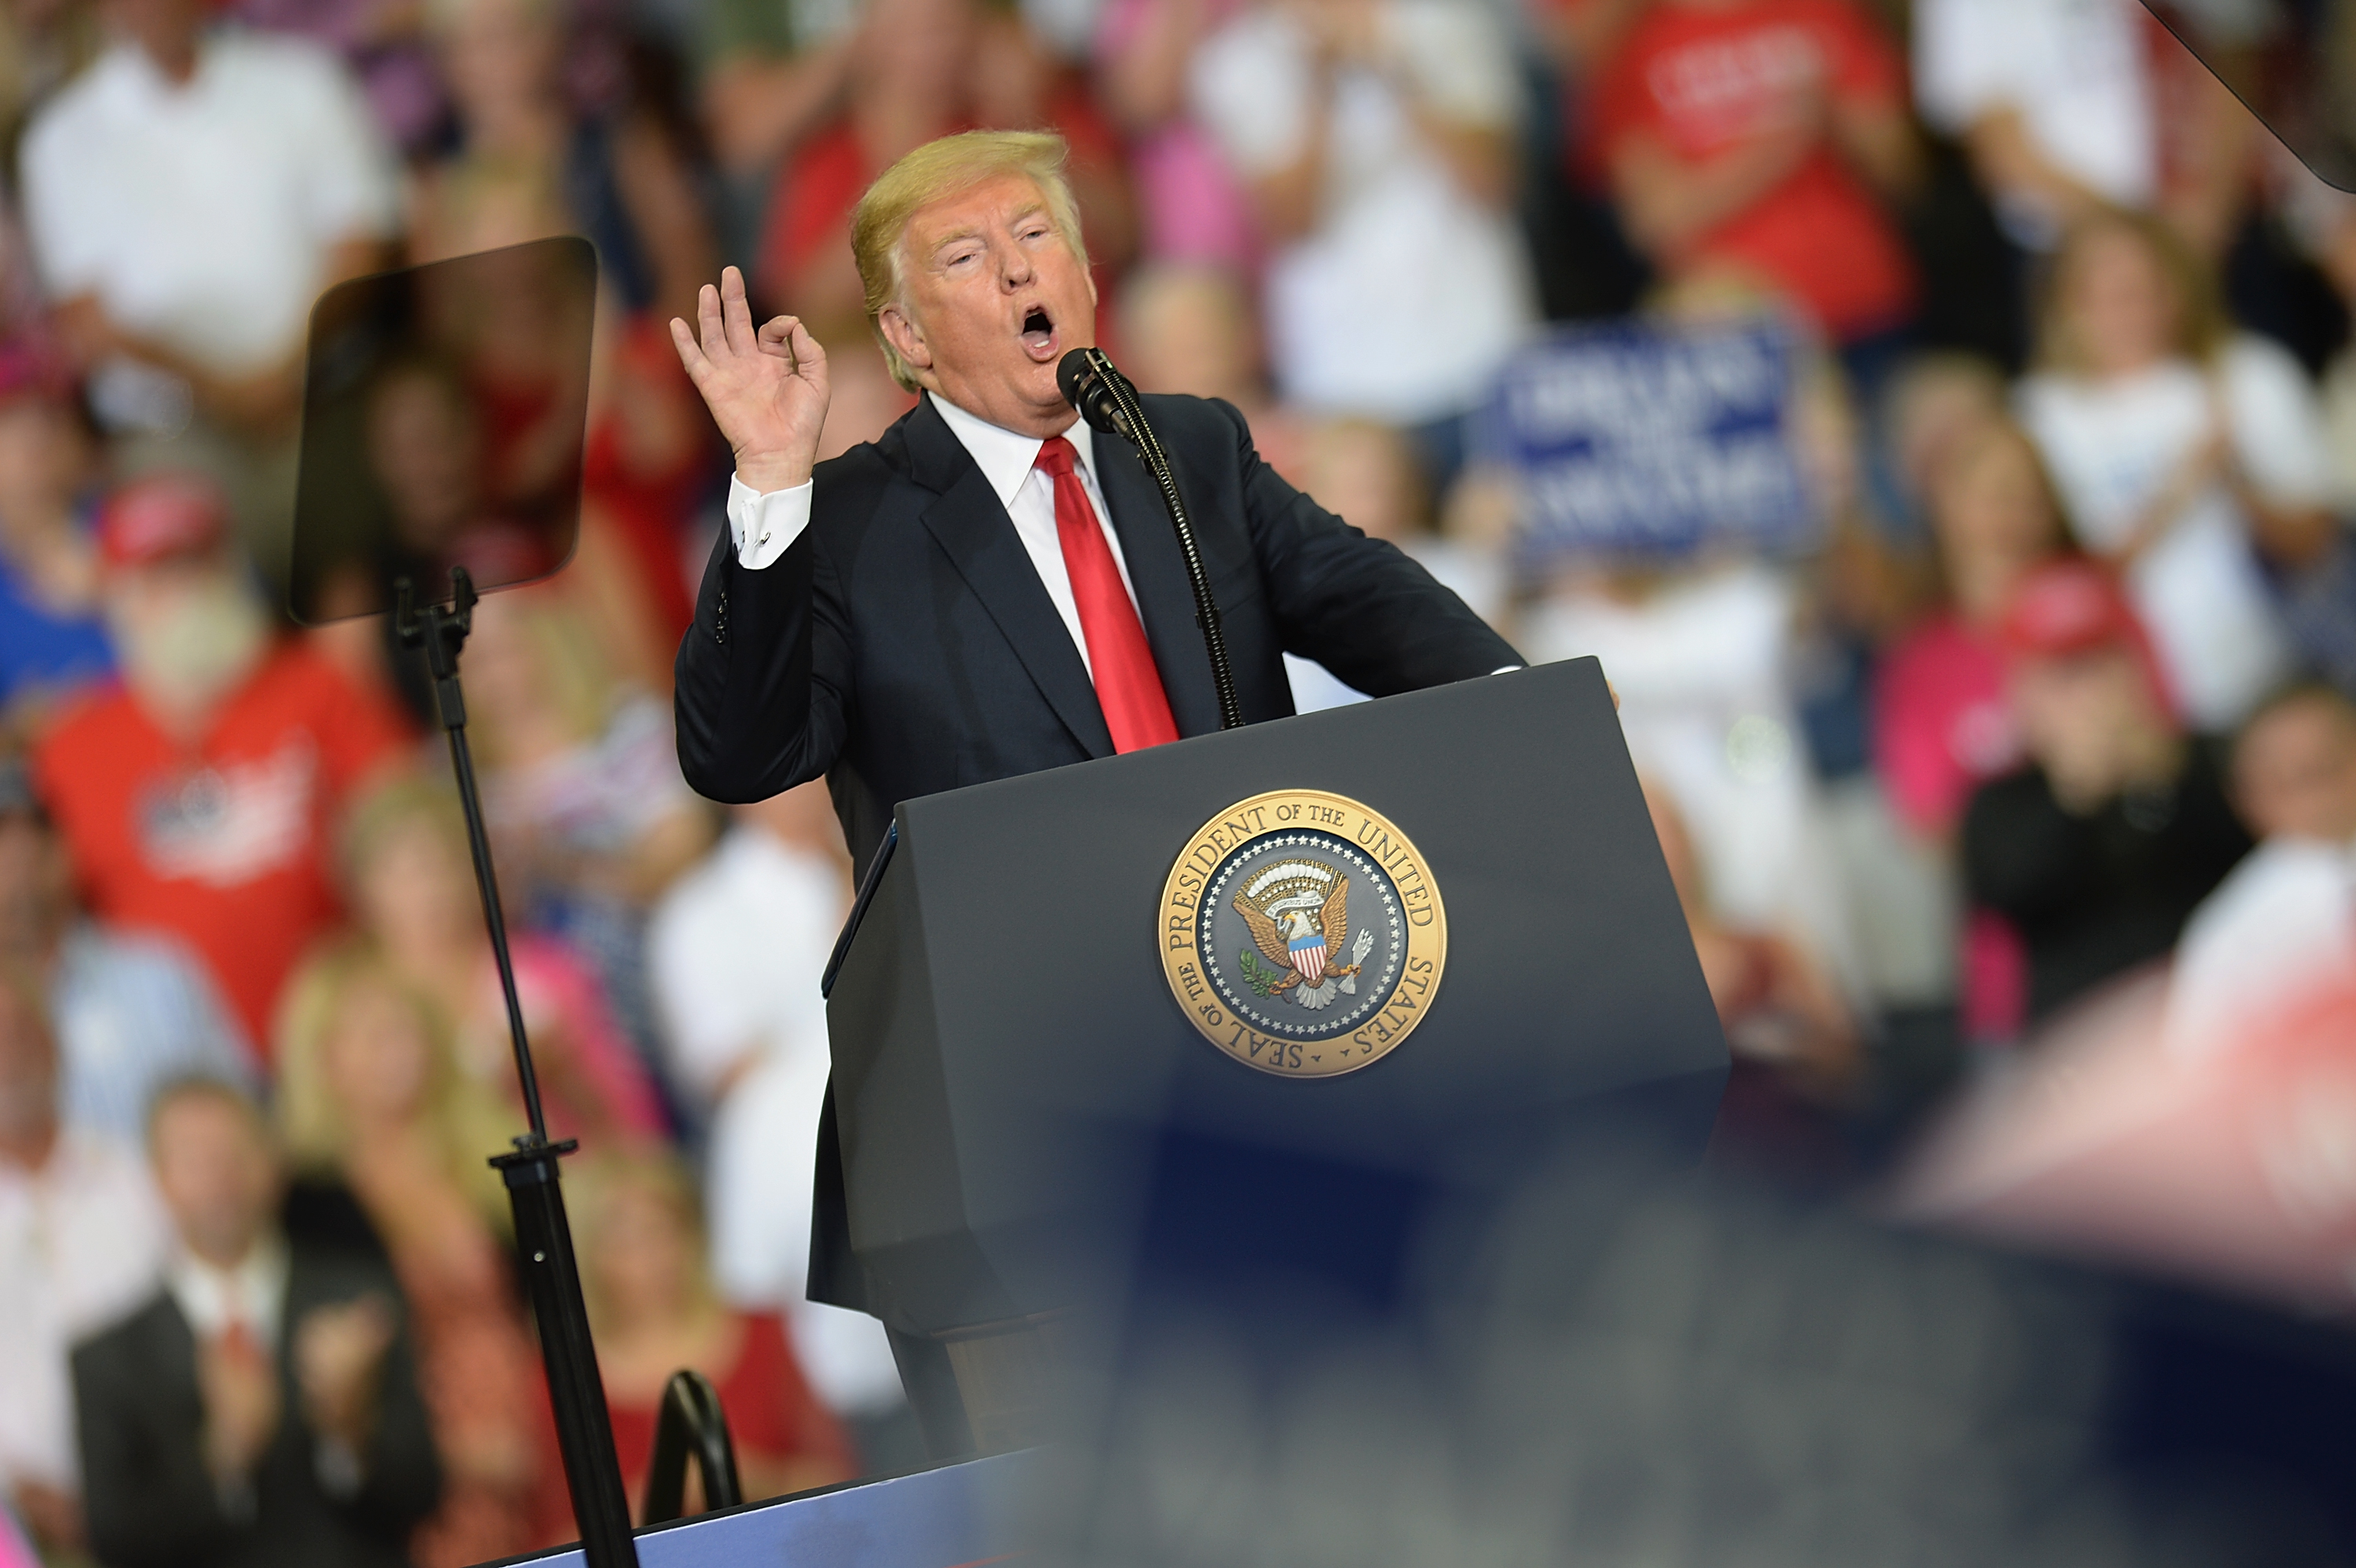 EVANSVILLE, IN - AUGUST 30: U.S. President Donald Trump delivers remarks at a campaign rally at the Ford Center on August 30, 2018 in Evansville, Indiana. The president was in town to support Republican Senate candidate Mike Braun, who is facing Sen. Joe Donnelly (D-IN) in November. (Photo by Michael B. Thomas/Getty Images)